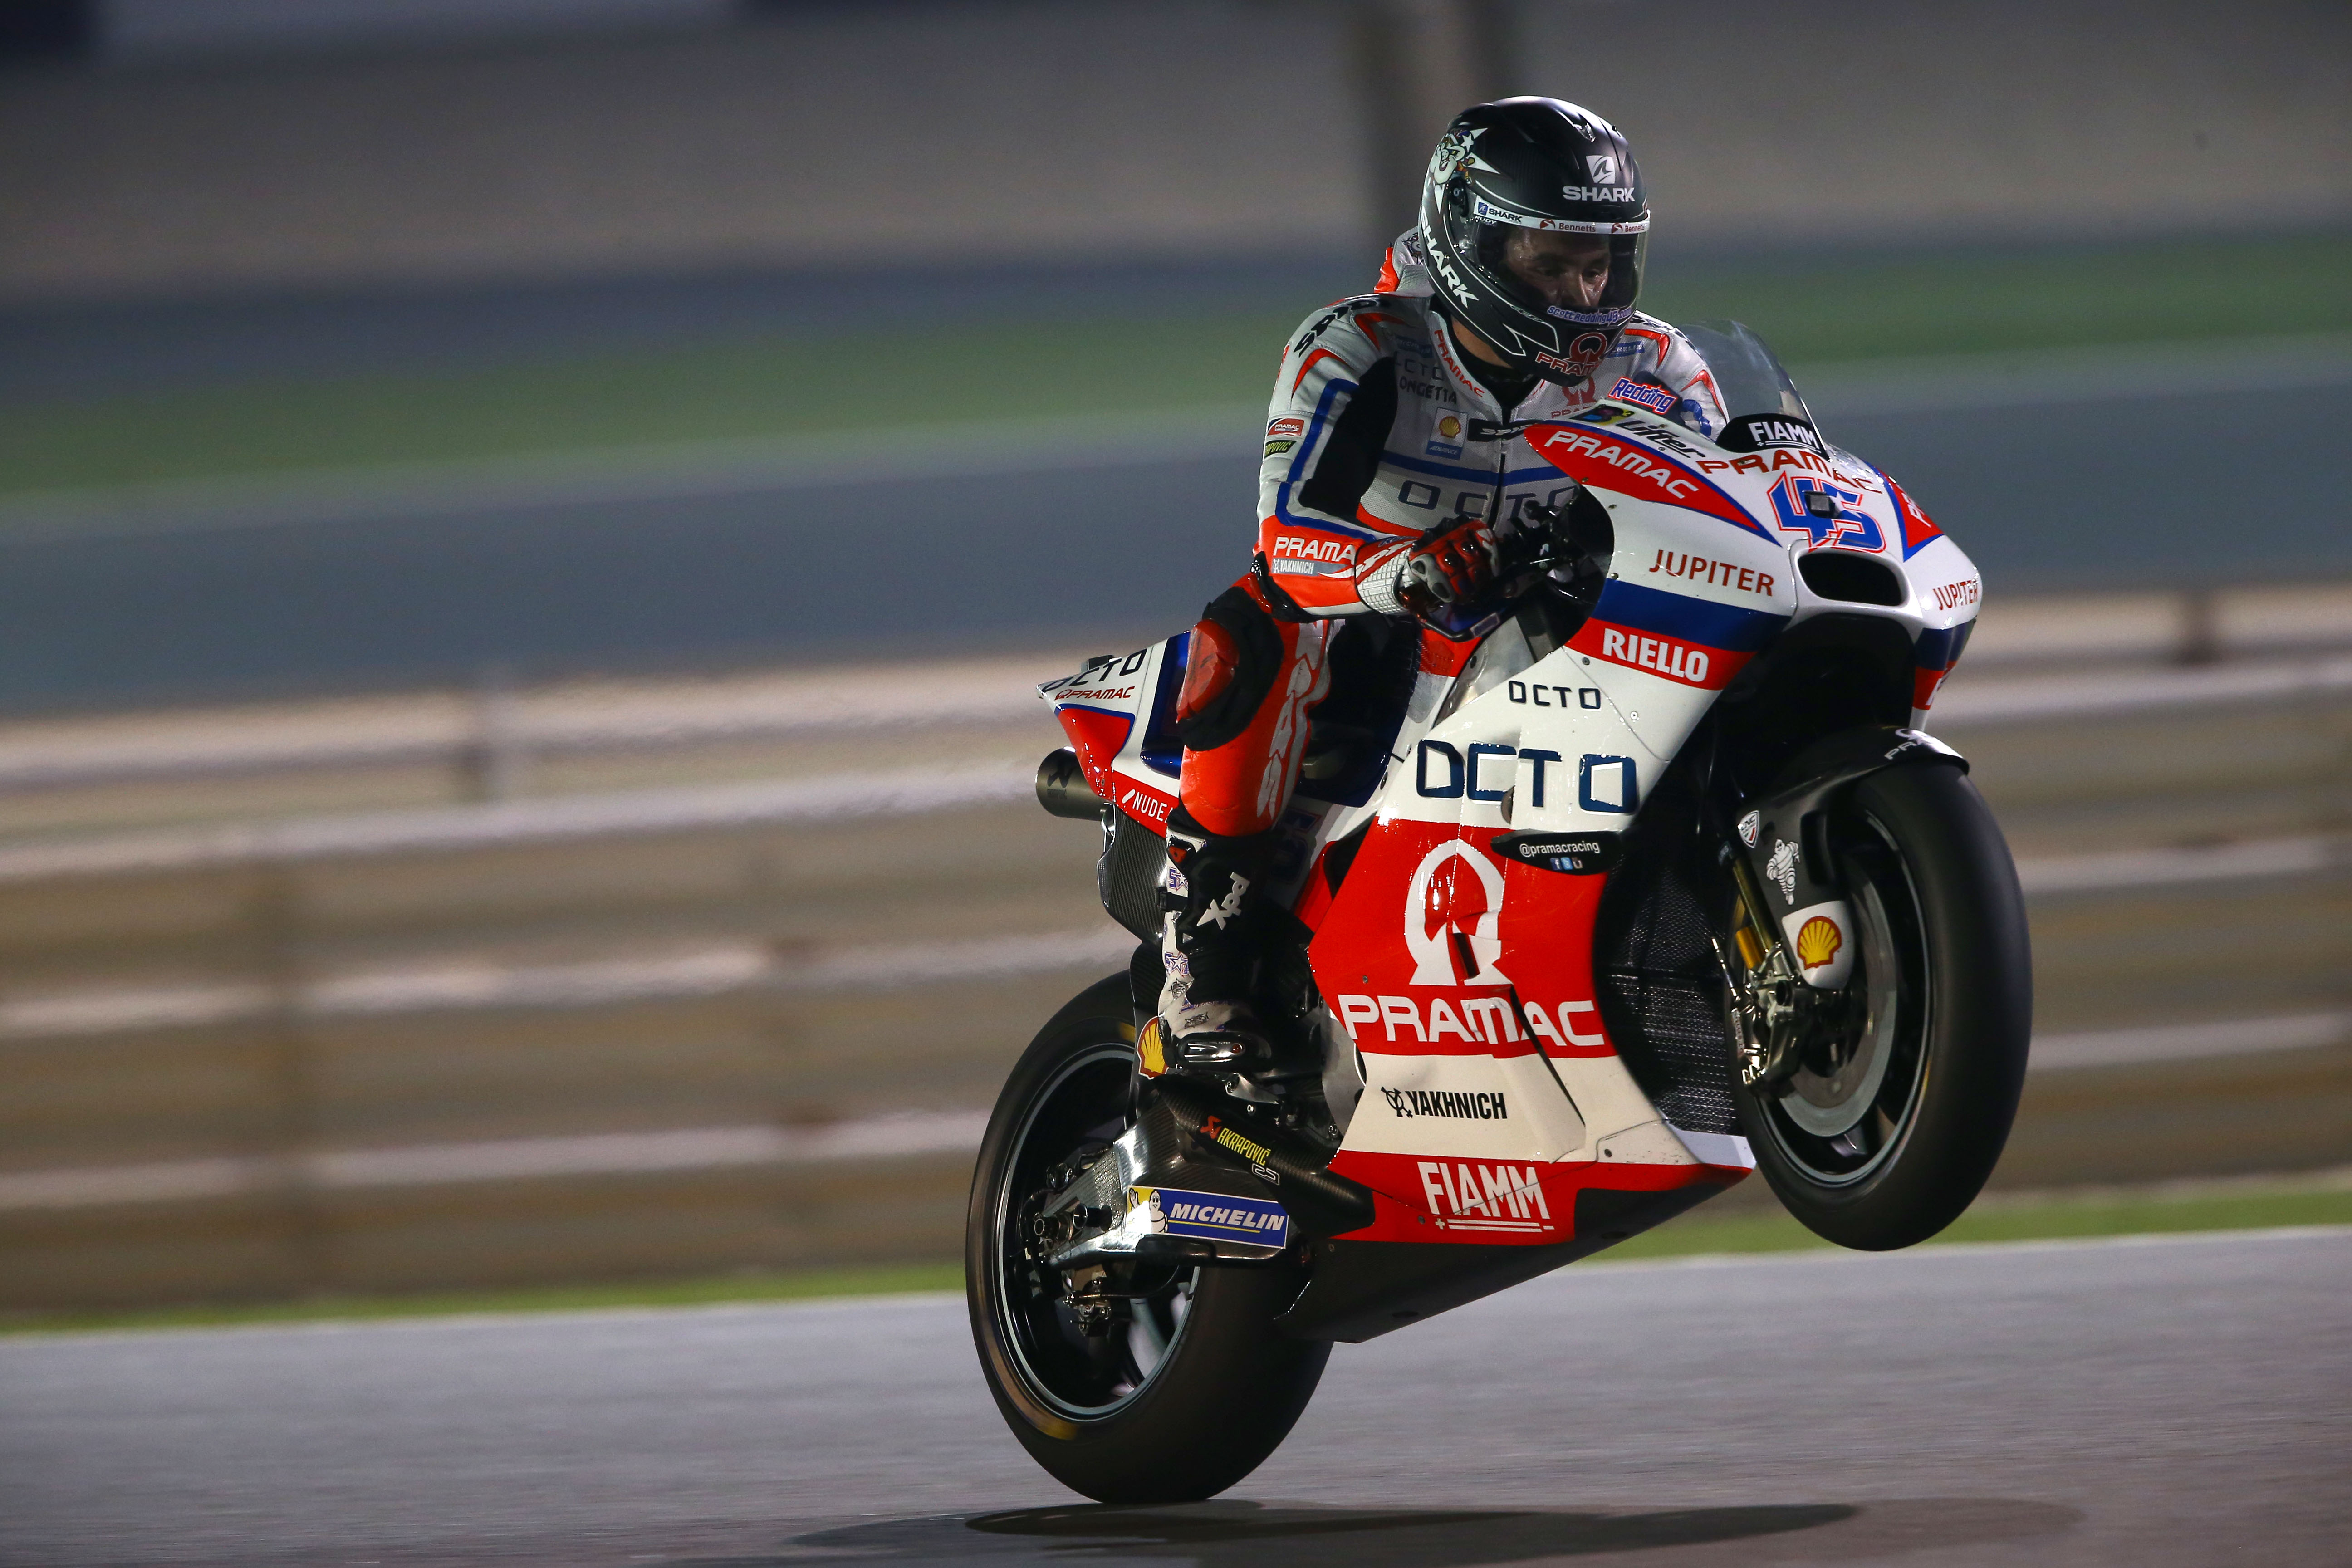 Redding pleased with Ducati package